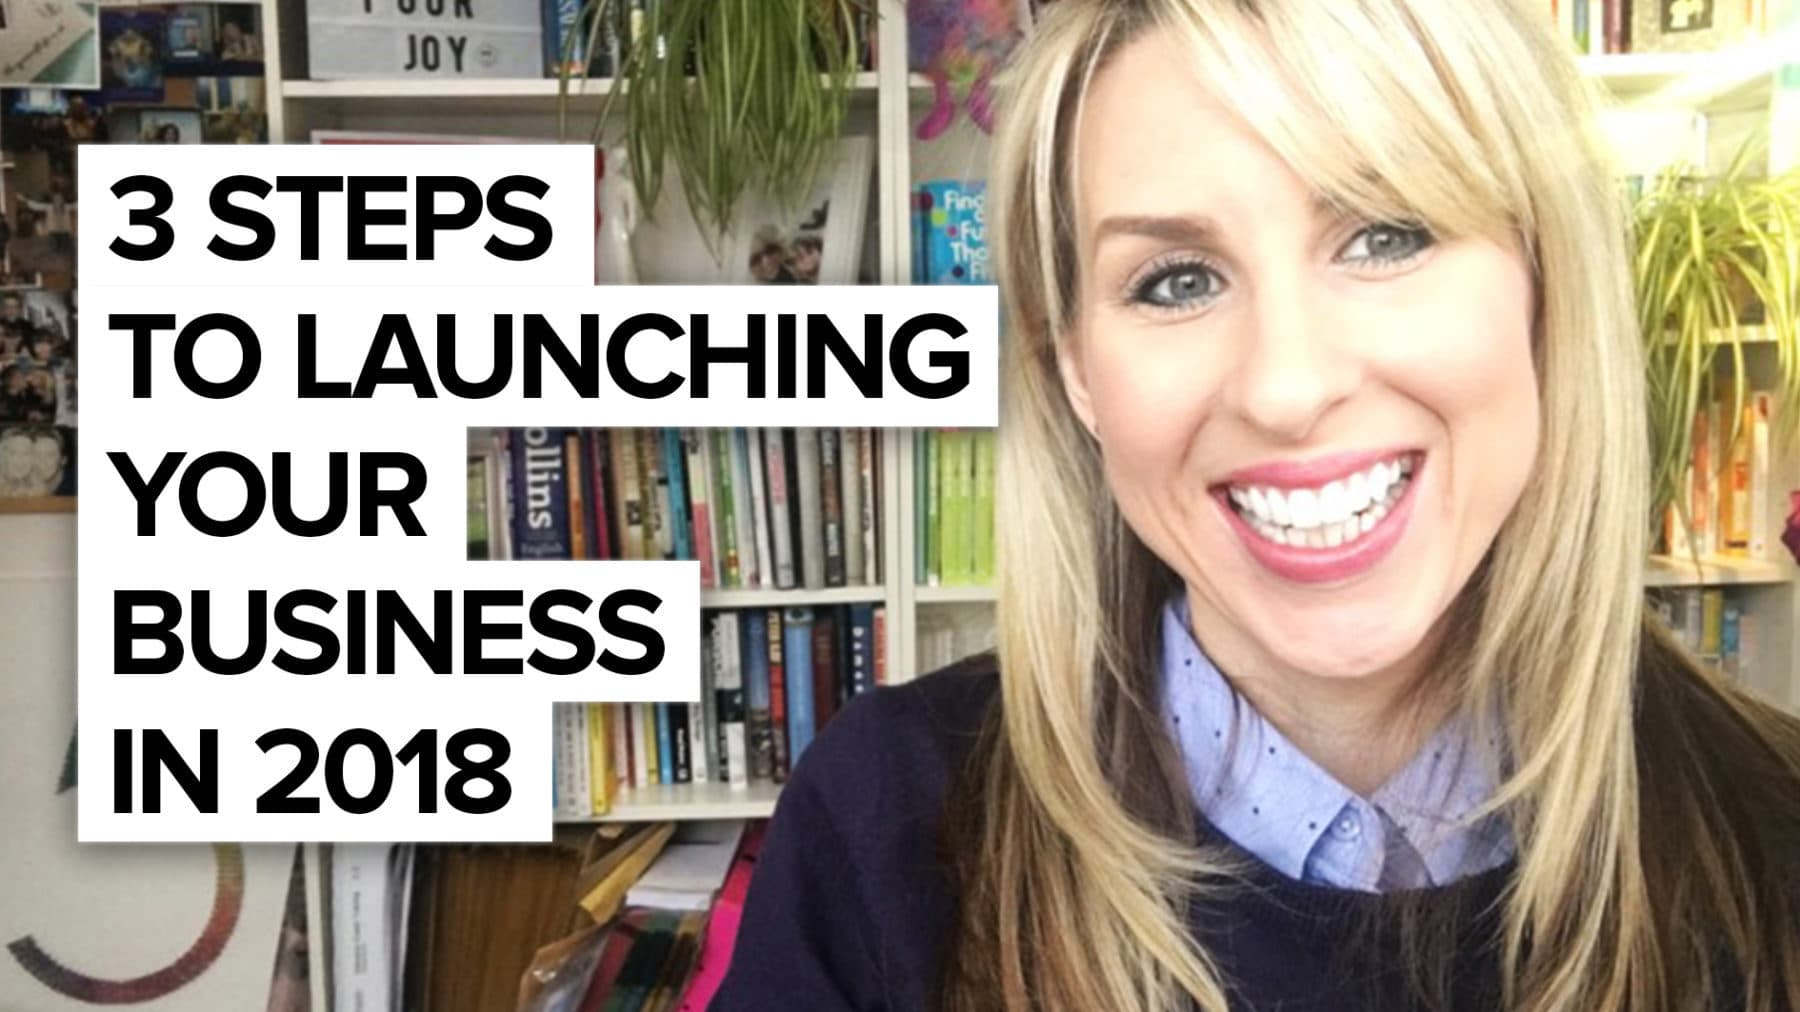 3 steps to launching your business in 2018